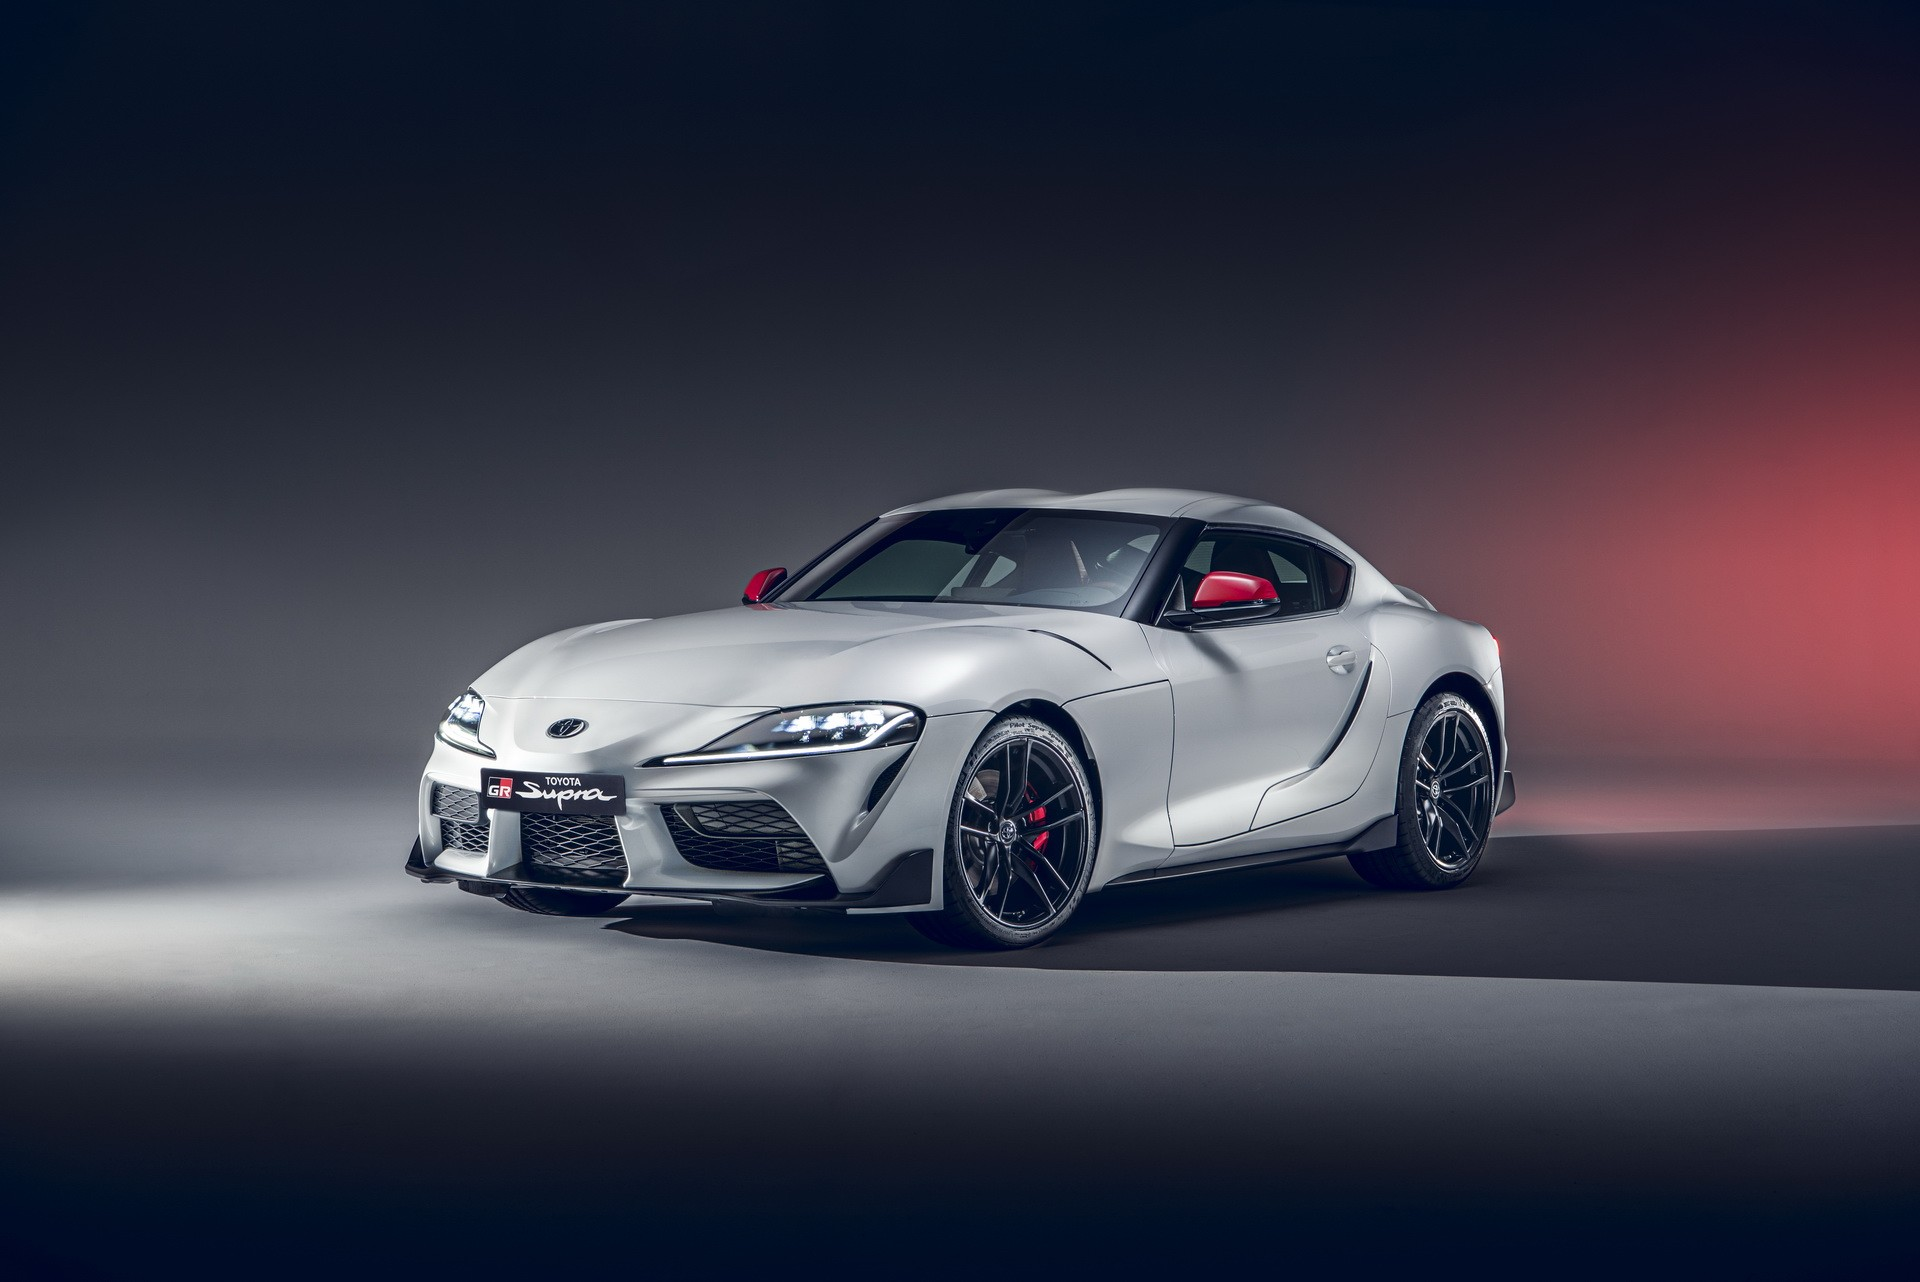 2020 toyota gr supra with turbo 20 liter engine now available in europe 1